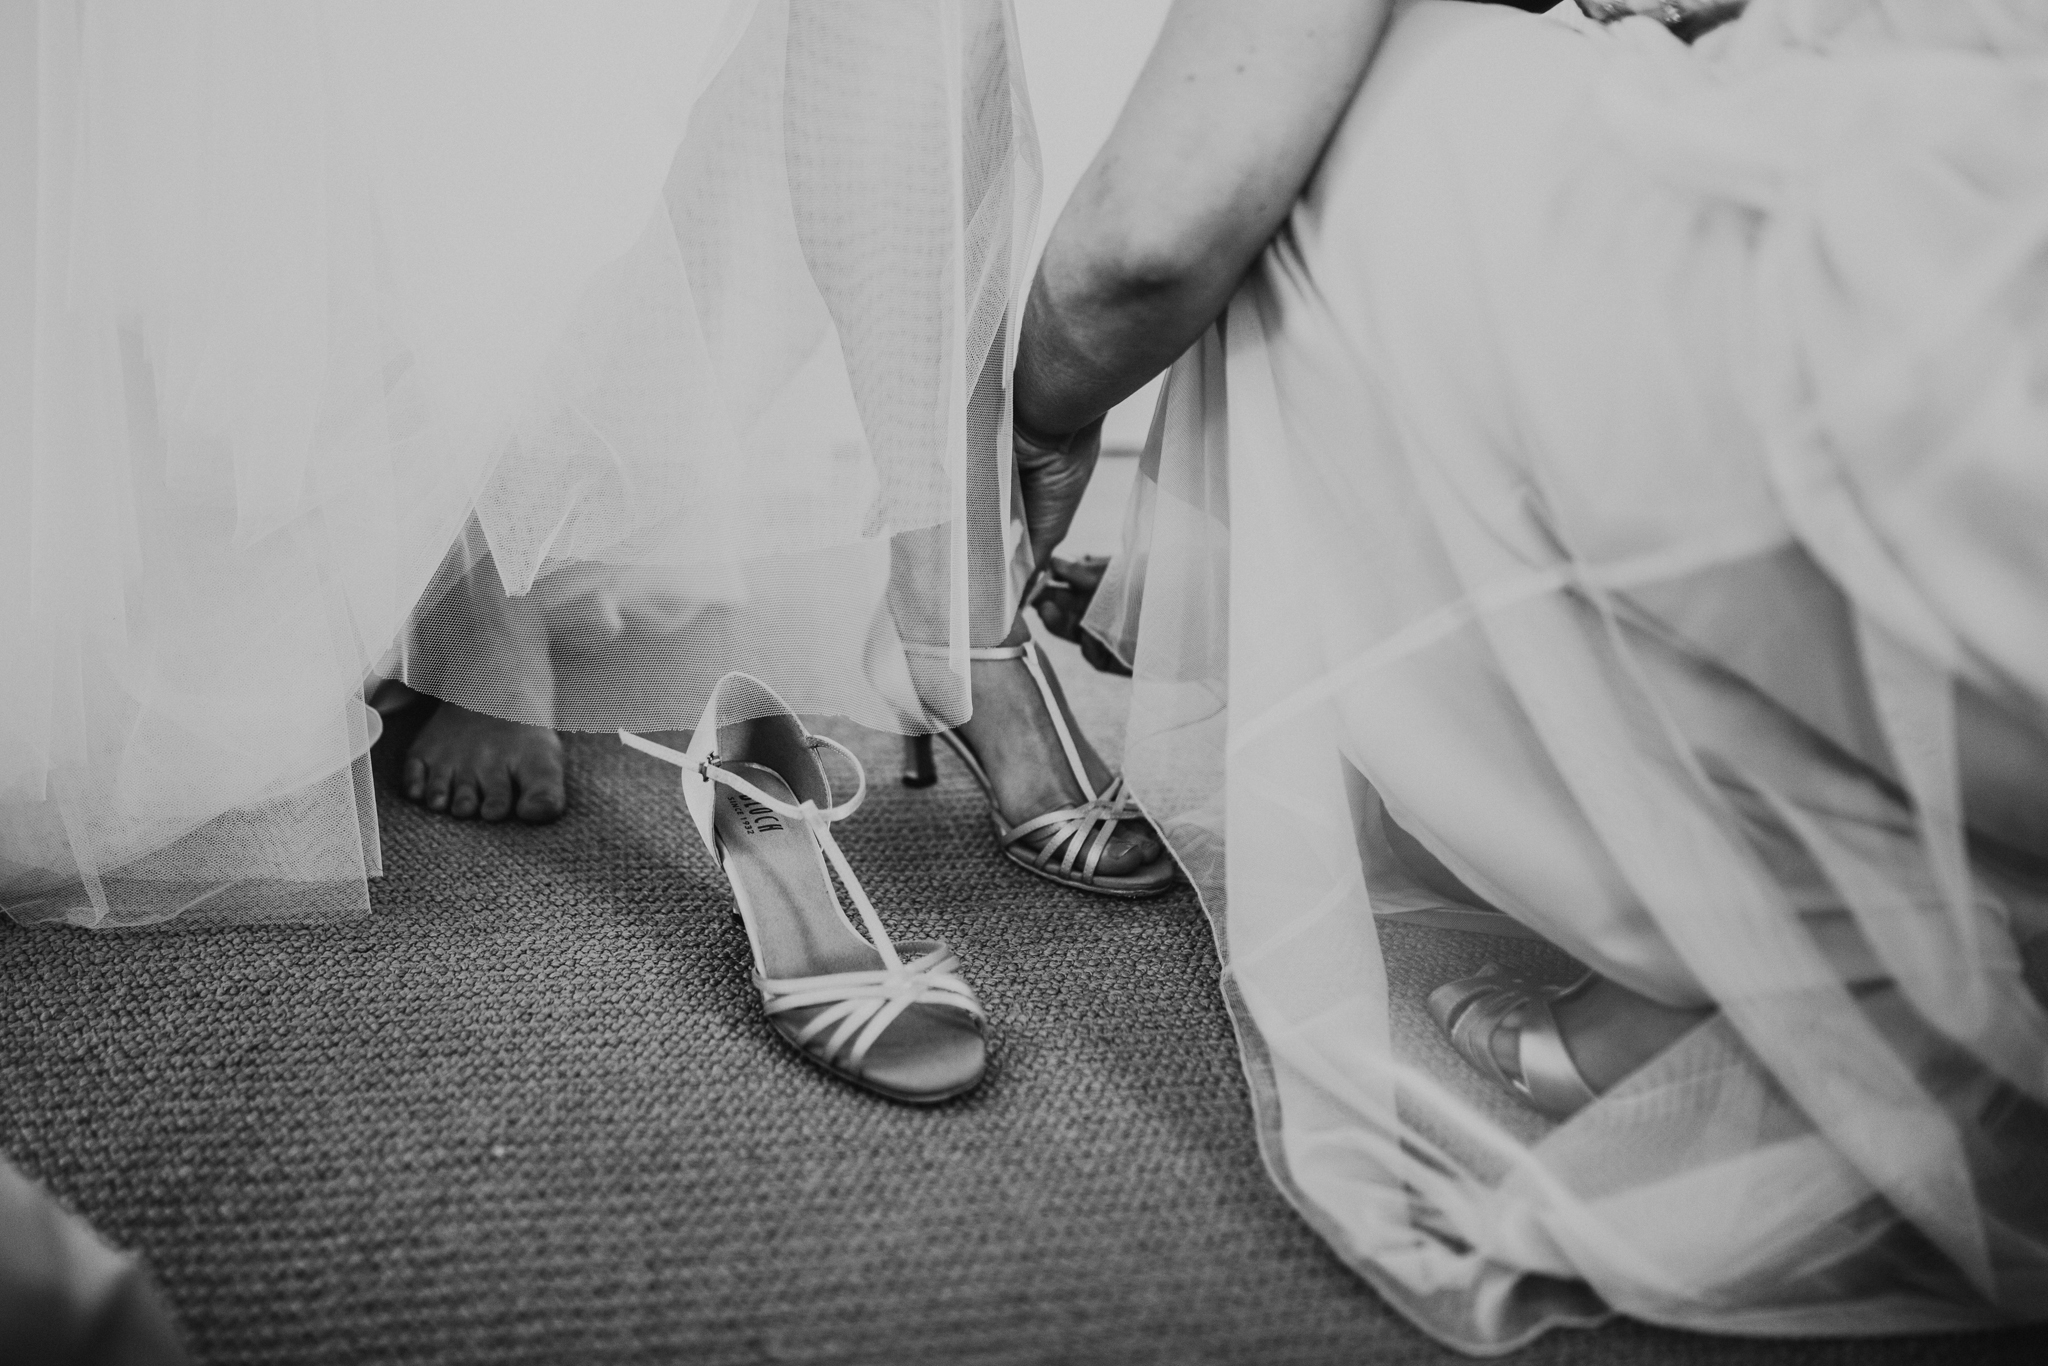 Hannah-Gerrard-Norfolk-Wedding-Back-to-the-Garden-Holt-Wells-Photography-Darina-Stoda-23.jpg